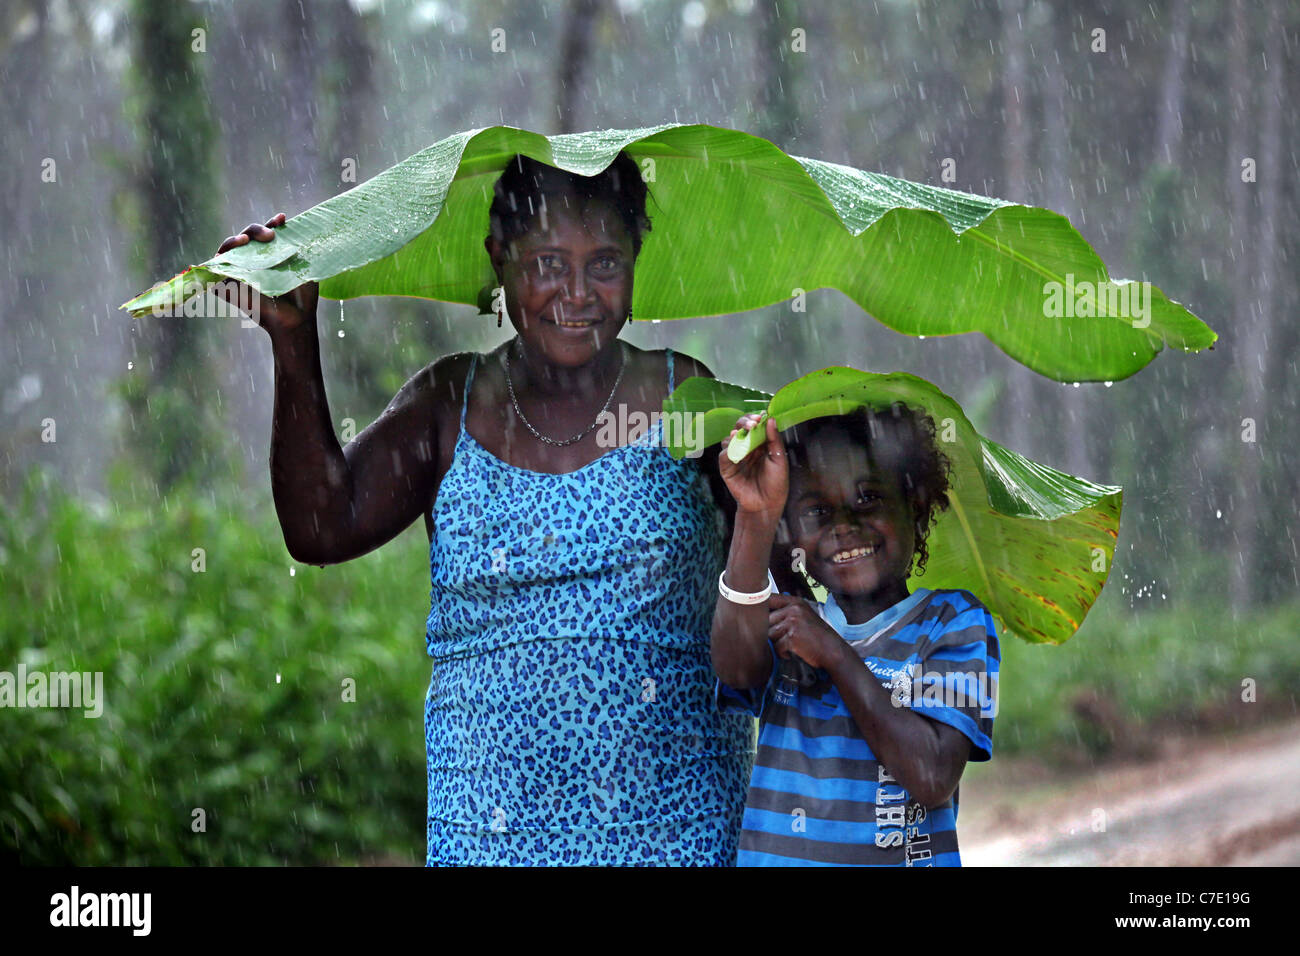 Mother and child using banana leaf as umbrella against pouring rain. Jungle of Bougainville Island, Papua New Guinea - Stock Image